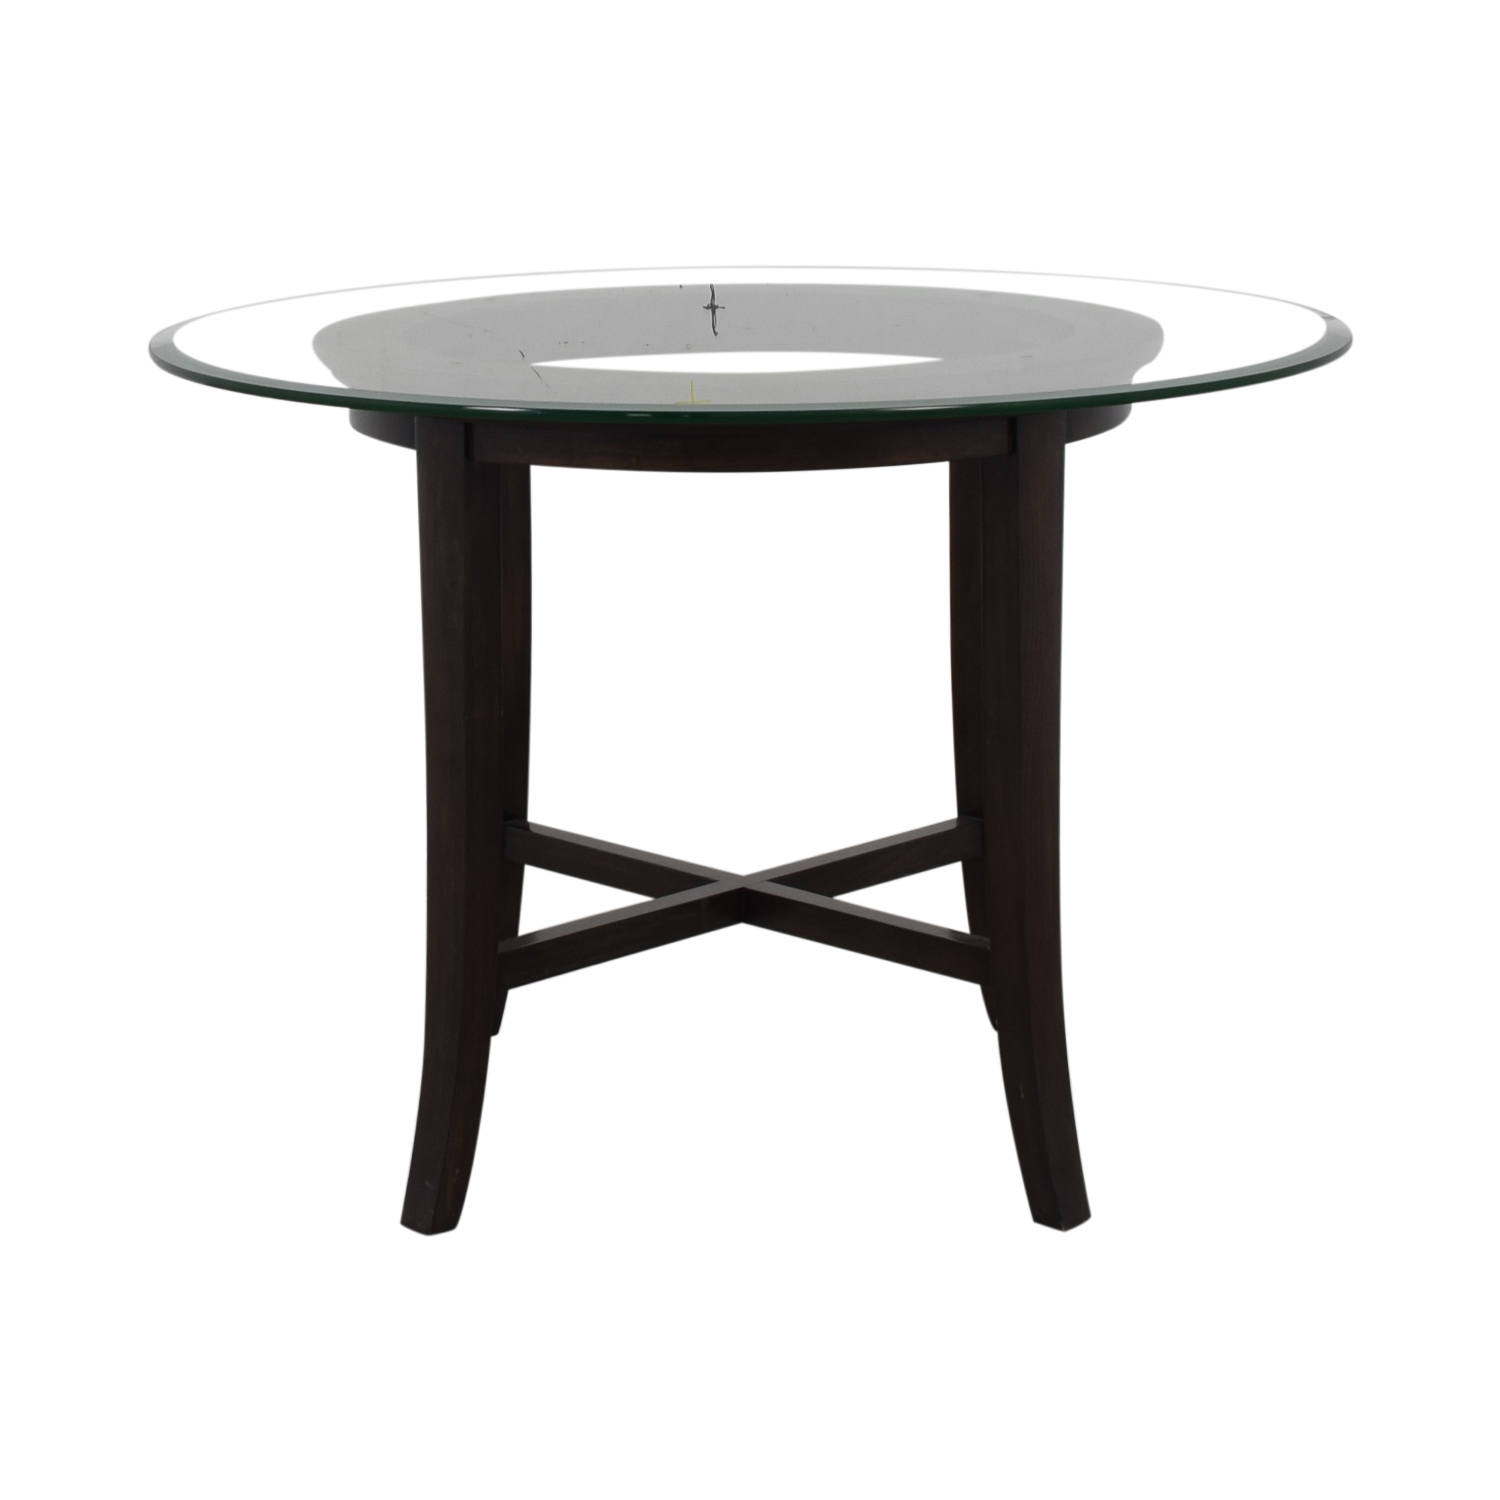 Crate & Barrel Crate & Barrel Halo Glass and Wood Dining Table nj